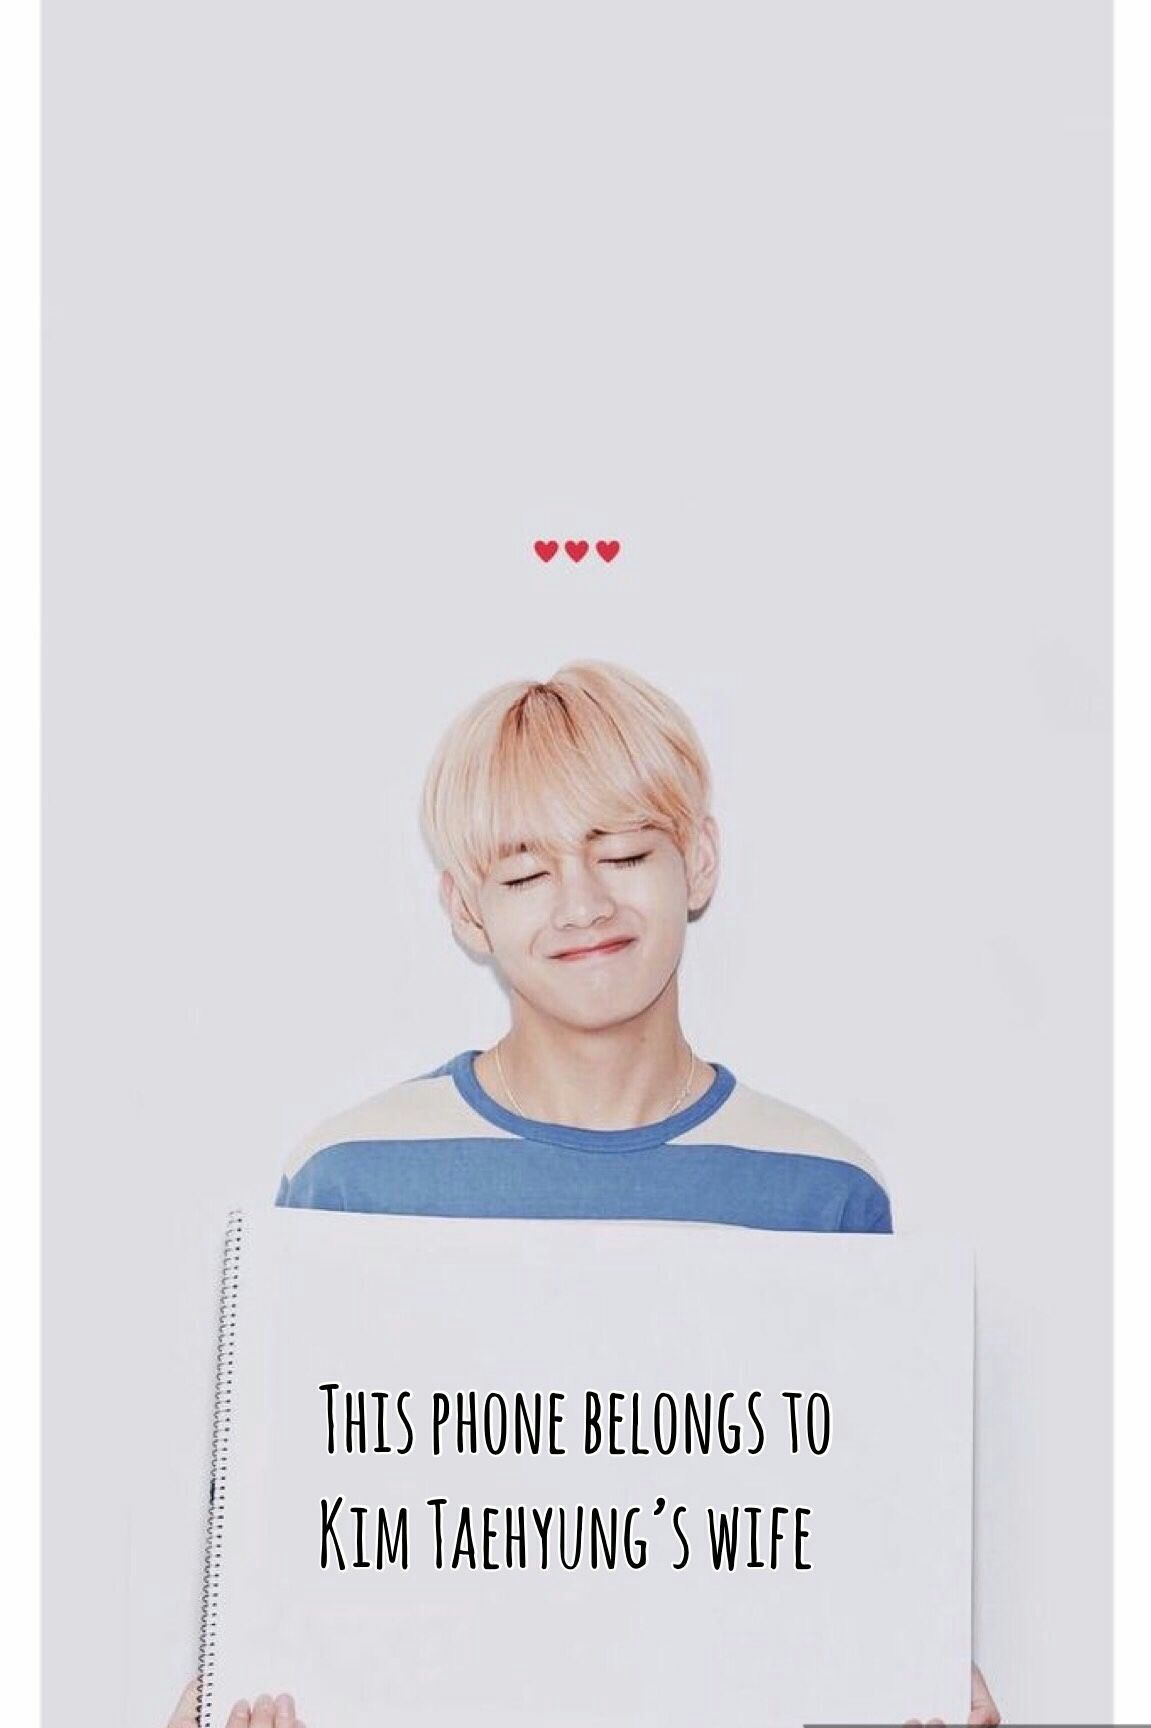 Bts cute and funny wallpapers